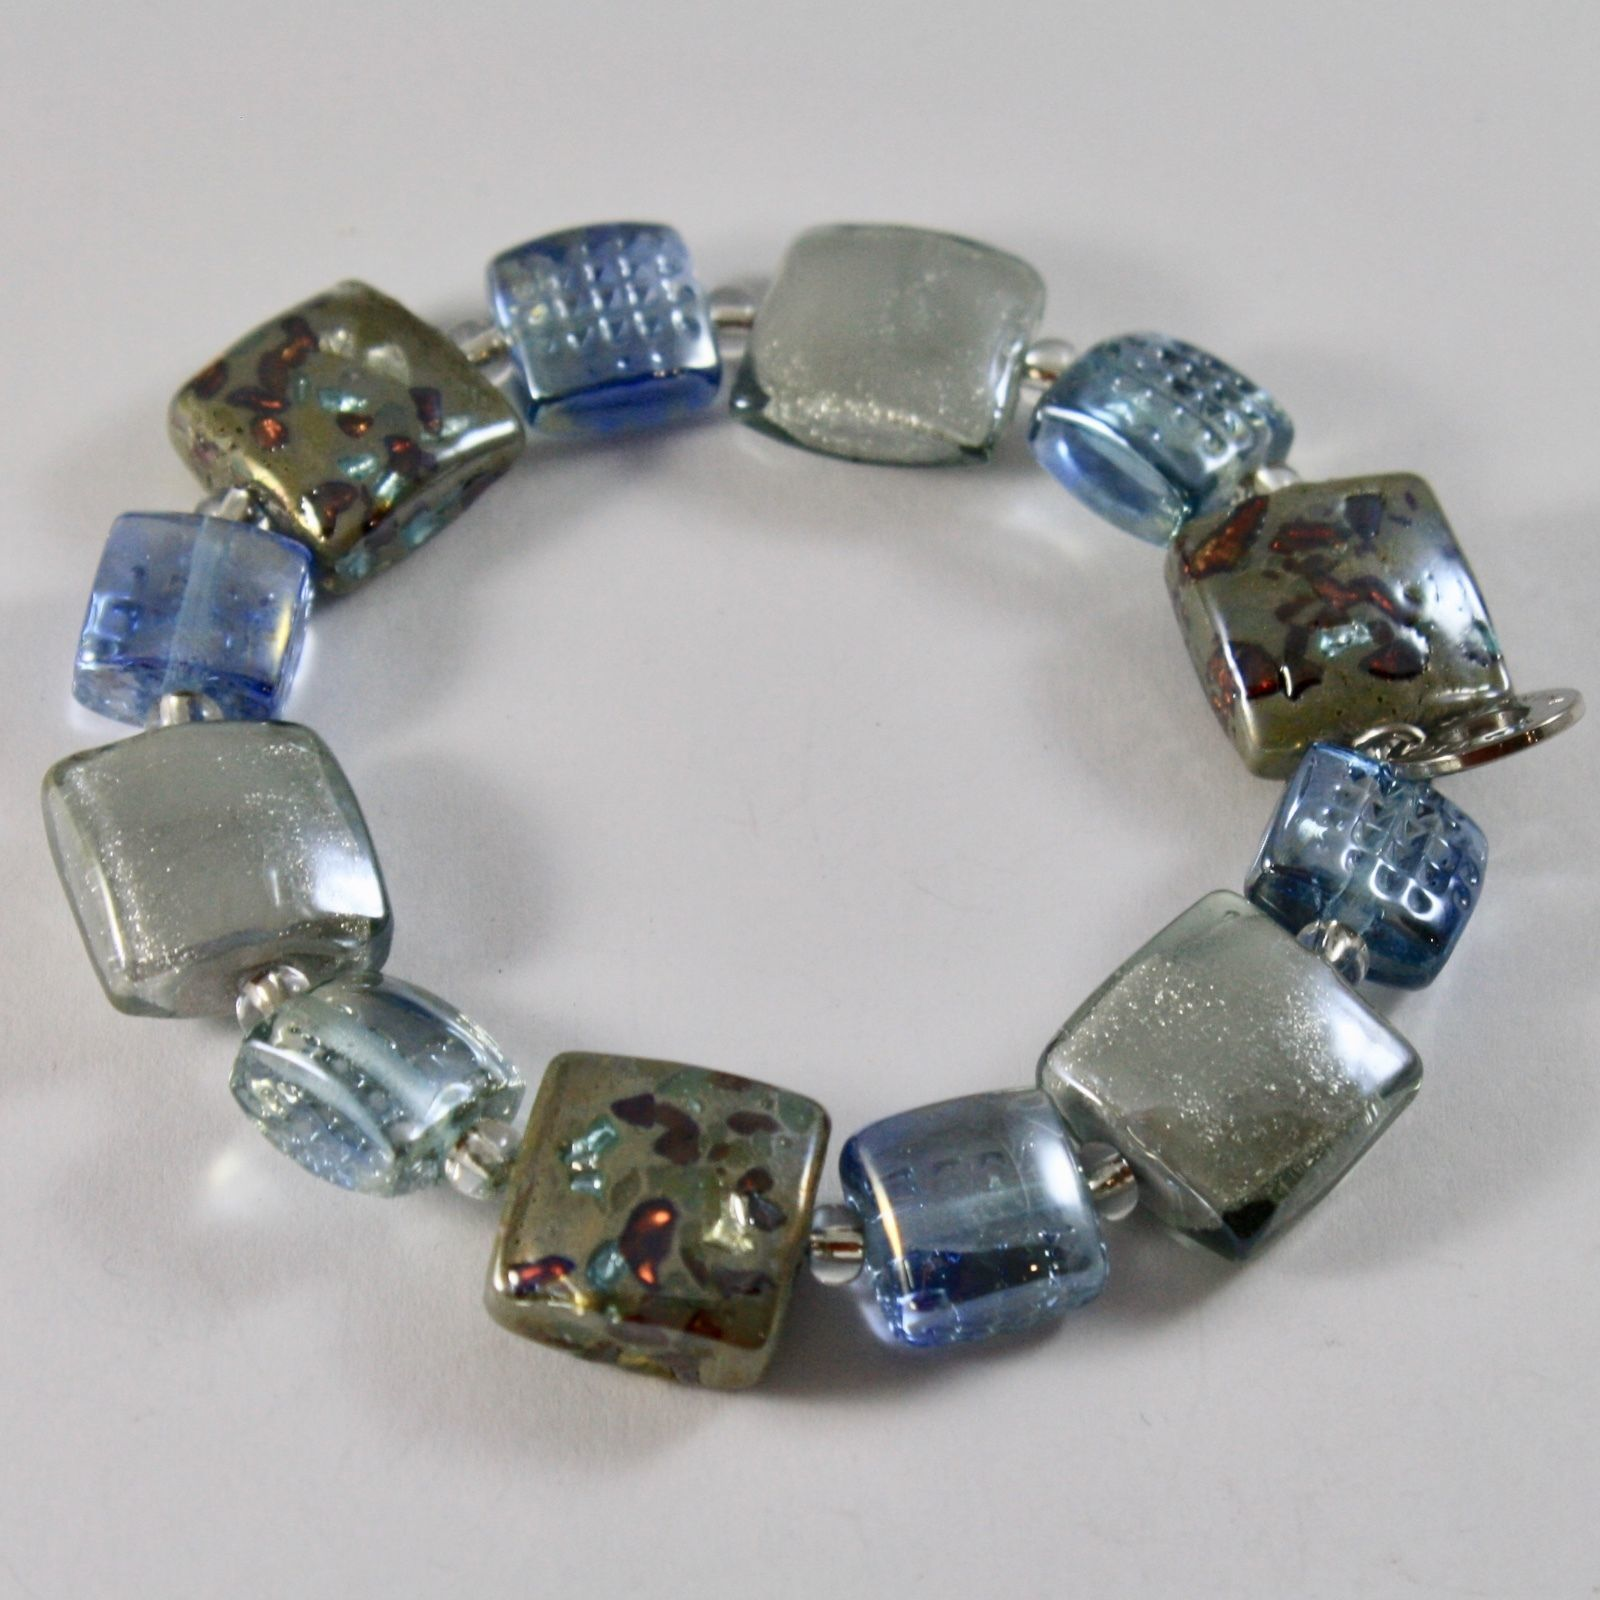 BRACELET ANTICA MURRINA VENEZIA MURANO GLASS, SQUARES BLUE GREY, ELASTIC